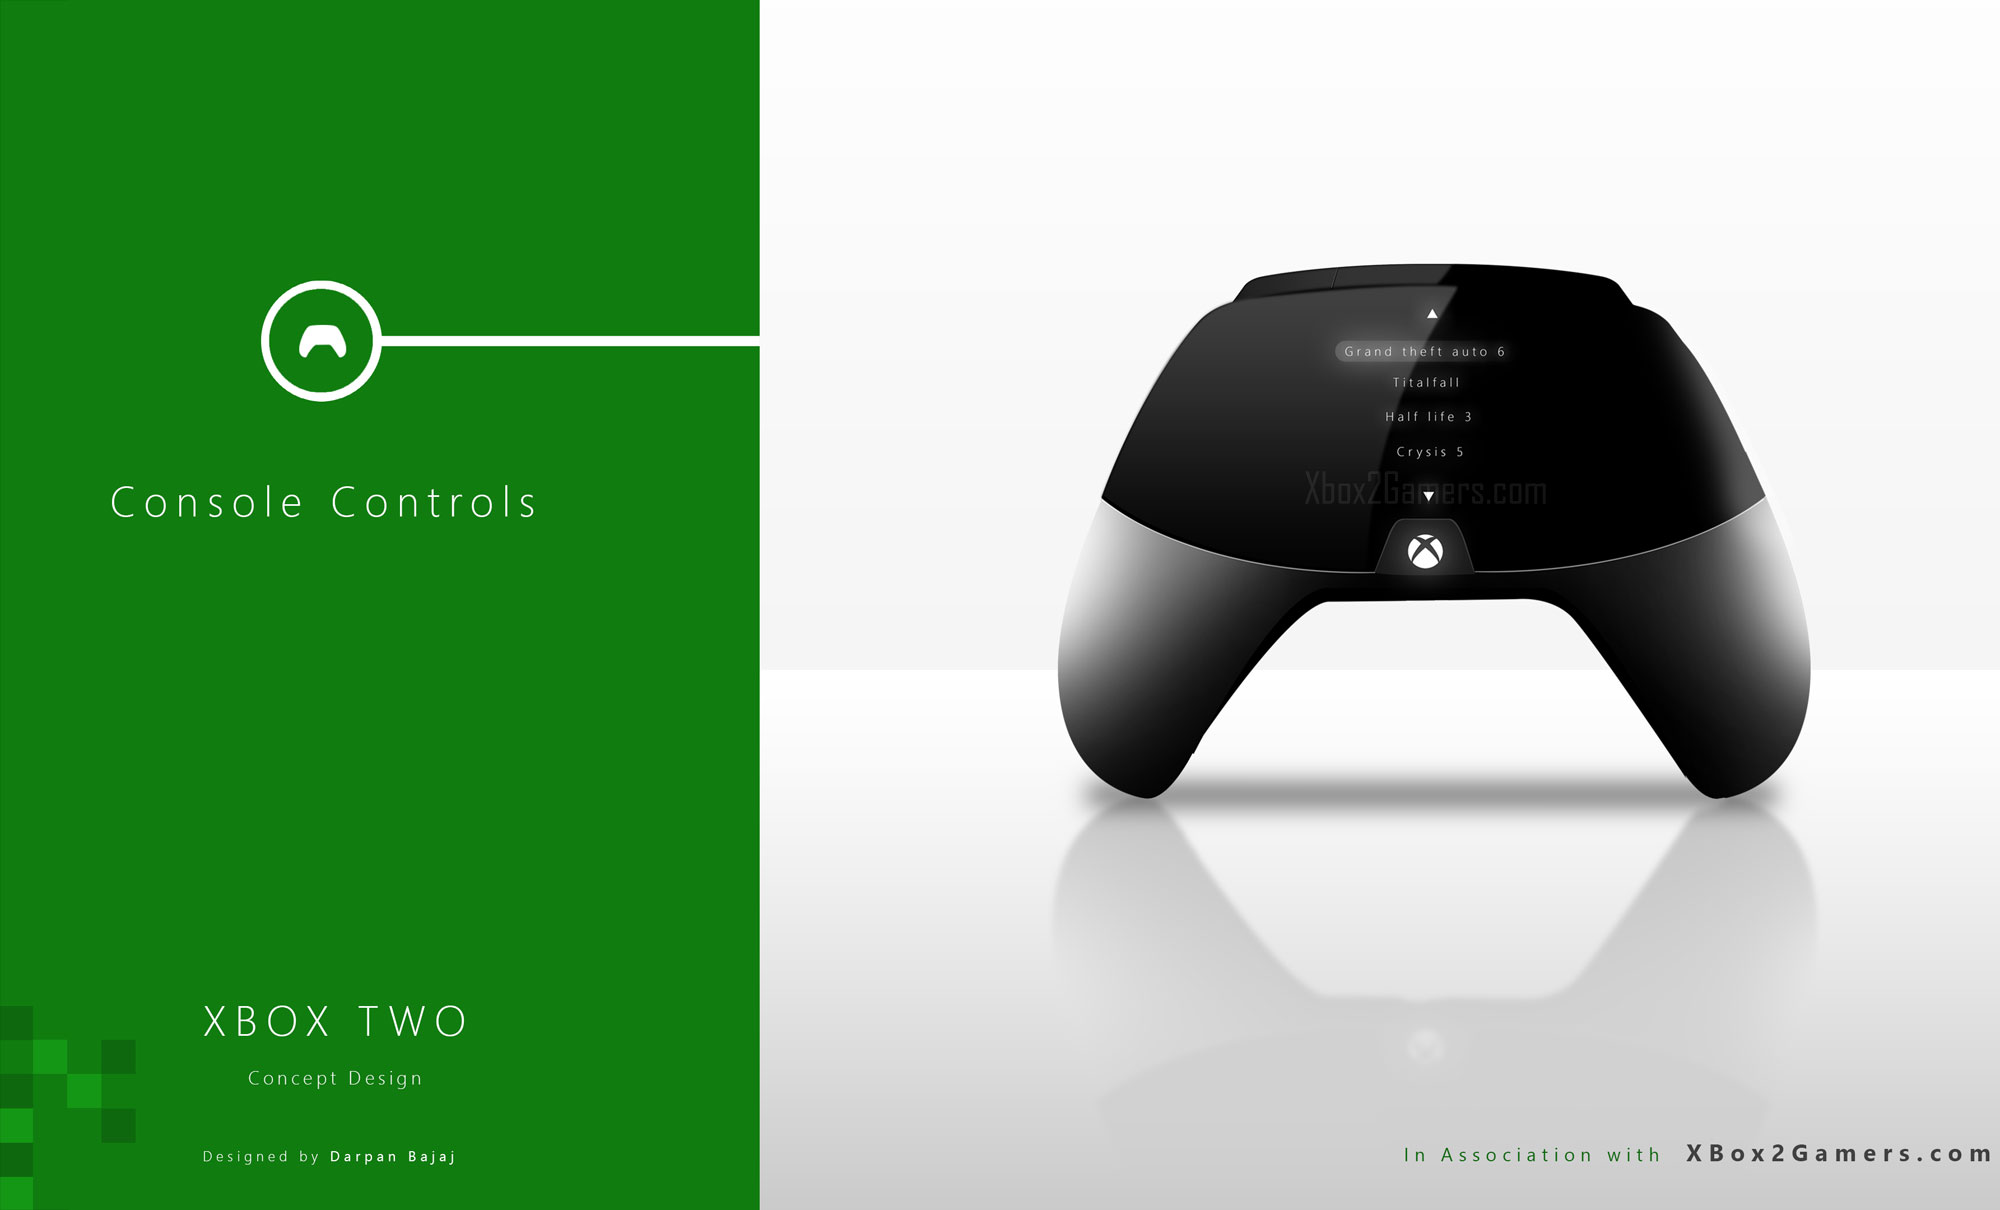 Xbox two release date in Melbourne